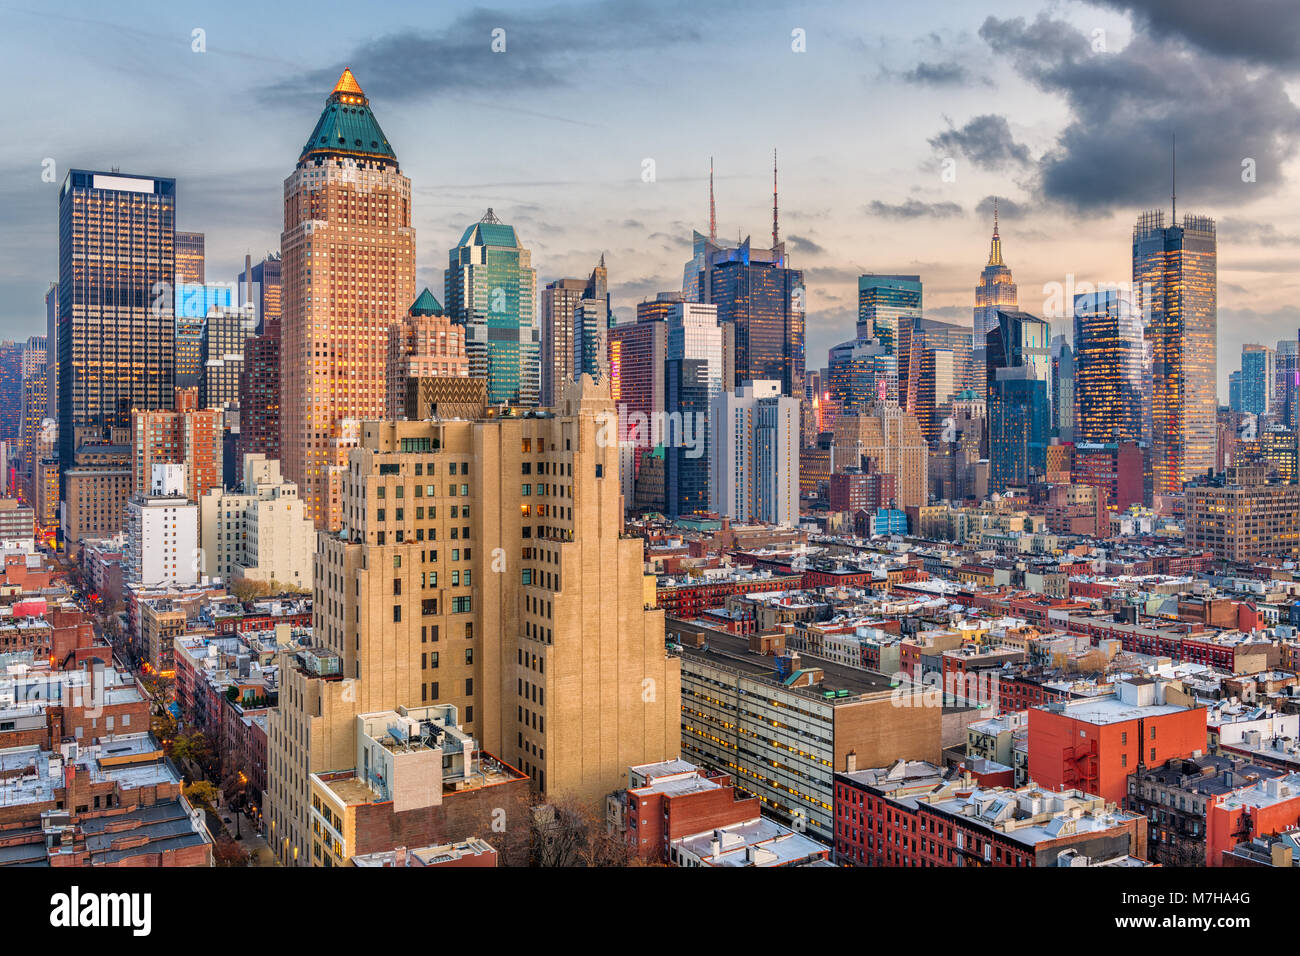 New York, New York, USA Manhattan skyline sur Hell's Kitchen, à l'aube. Photo Stock